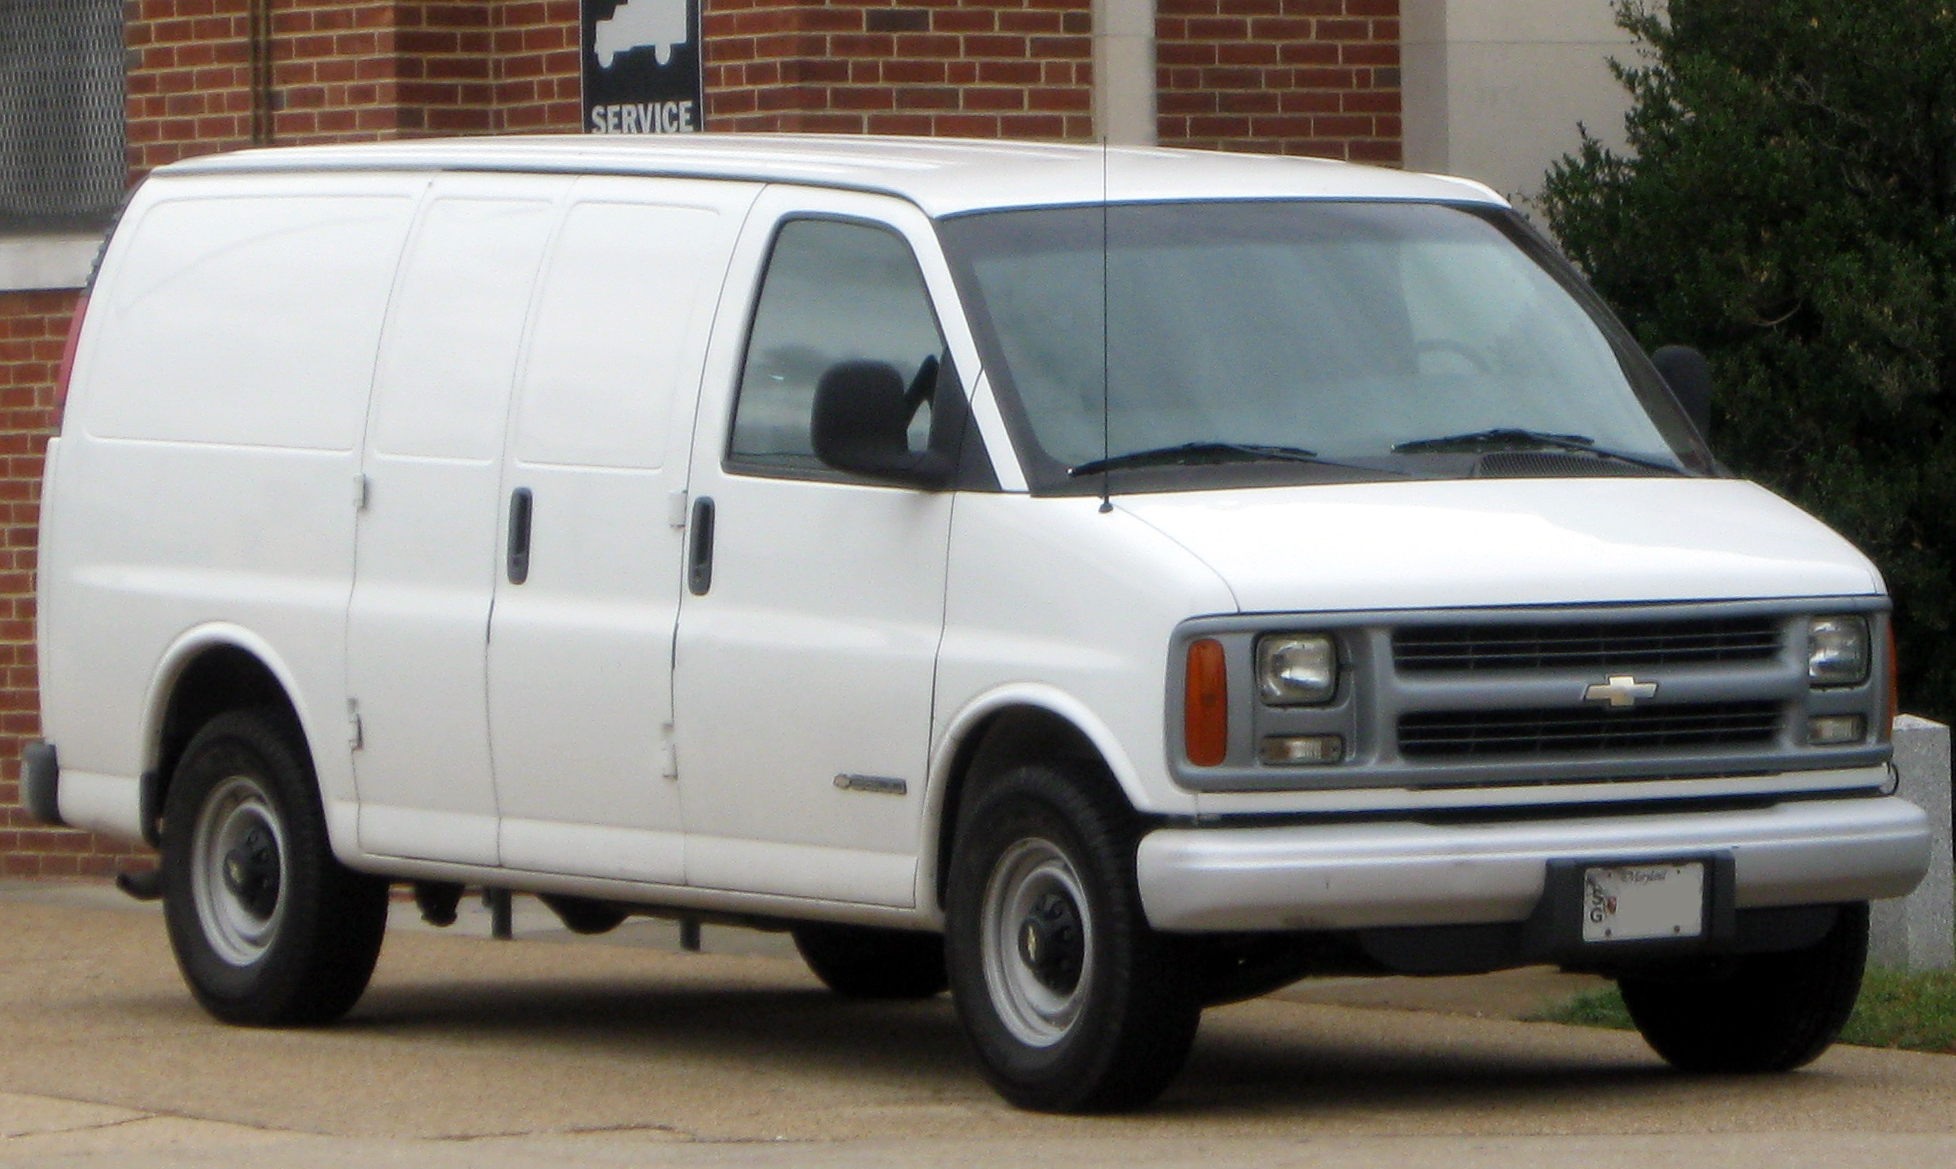 2010 Chevrolet Express Information and photos ZombieDrive